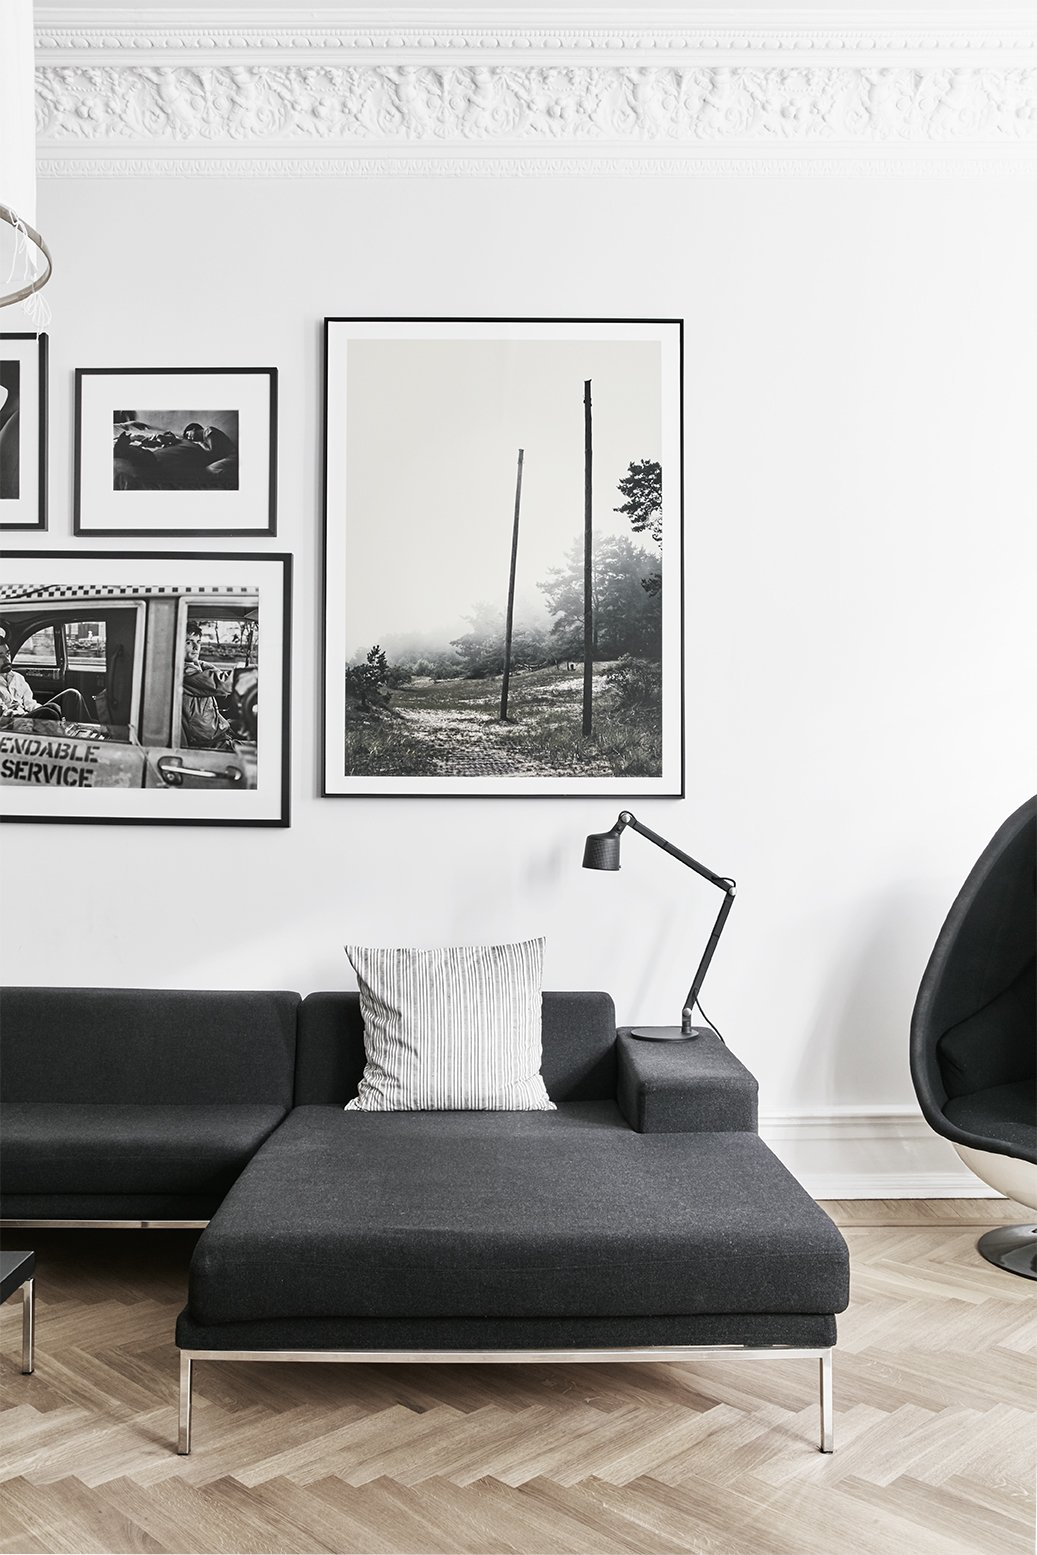 Living Room, Sofa, Sectional, Chair, Lamps, Table Lighting, and Light Hardwood Floor In the living room, a Vipp table lamp rests on a Hockney sofa by Eero Koivisto for David Design. - Gothenburg, Sweden Dwell Magazine : September / October 2017  Photos from A Careful Renovation Brings a 19th-Century Flat in Gothenburg Back to Life